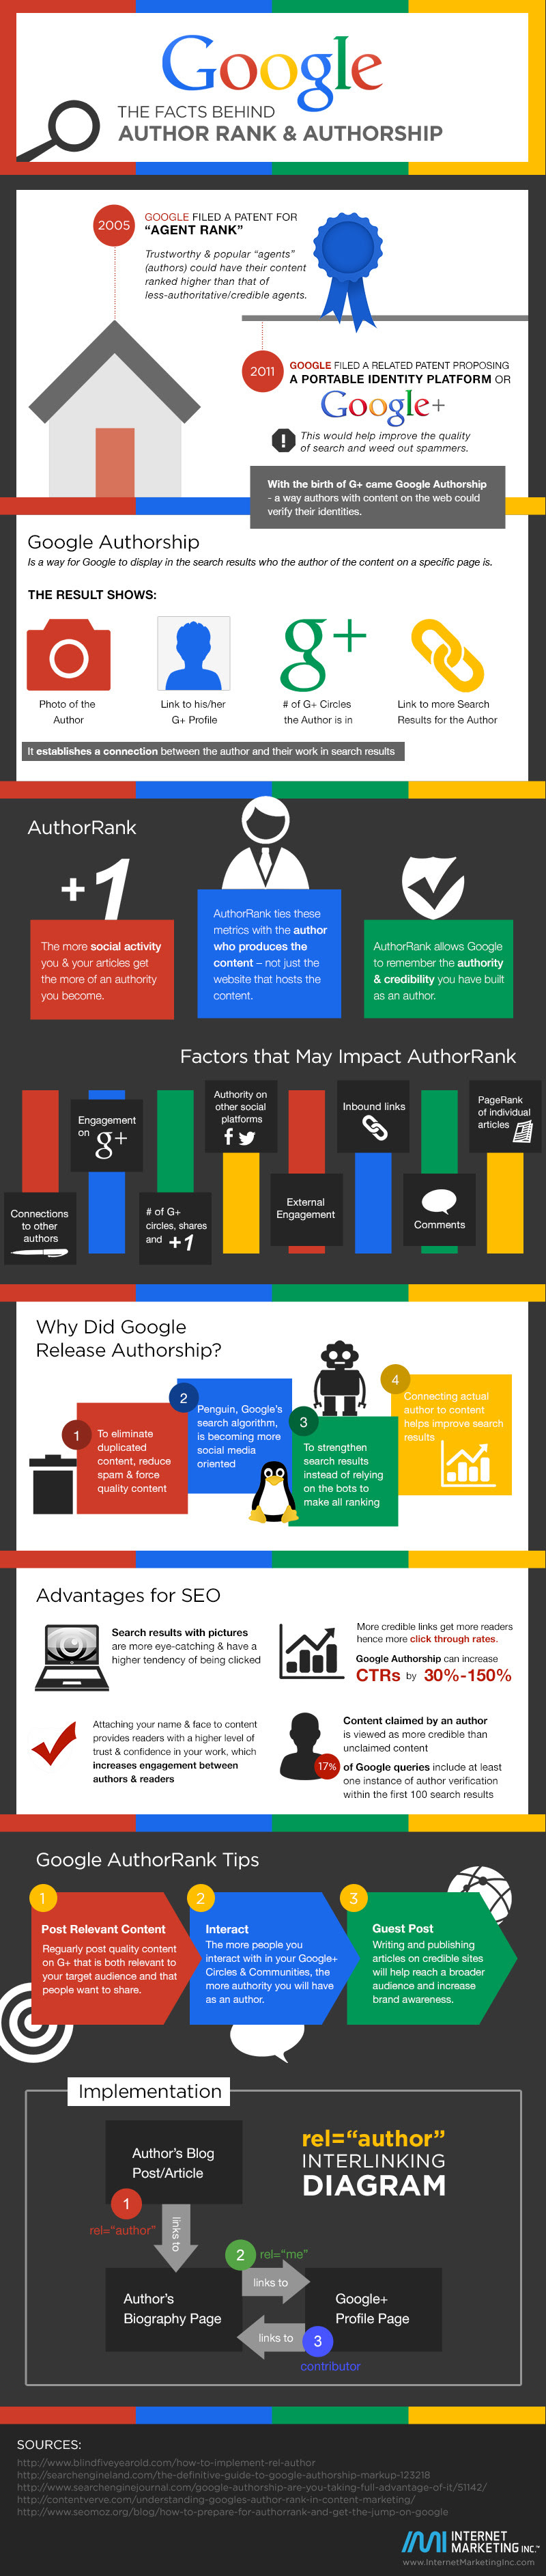 The Evolution of Google Authorship - infographic